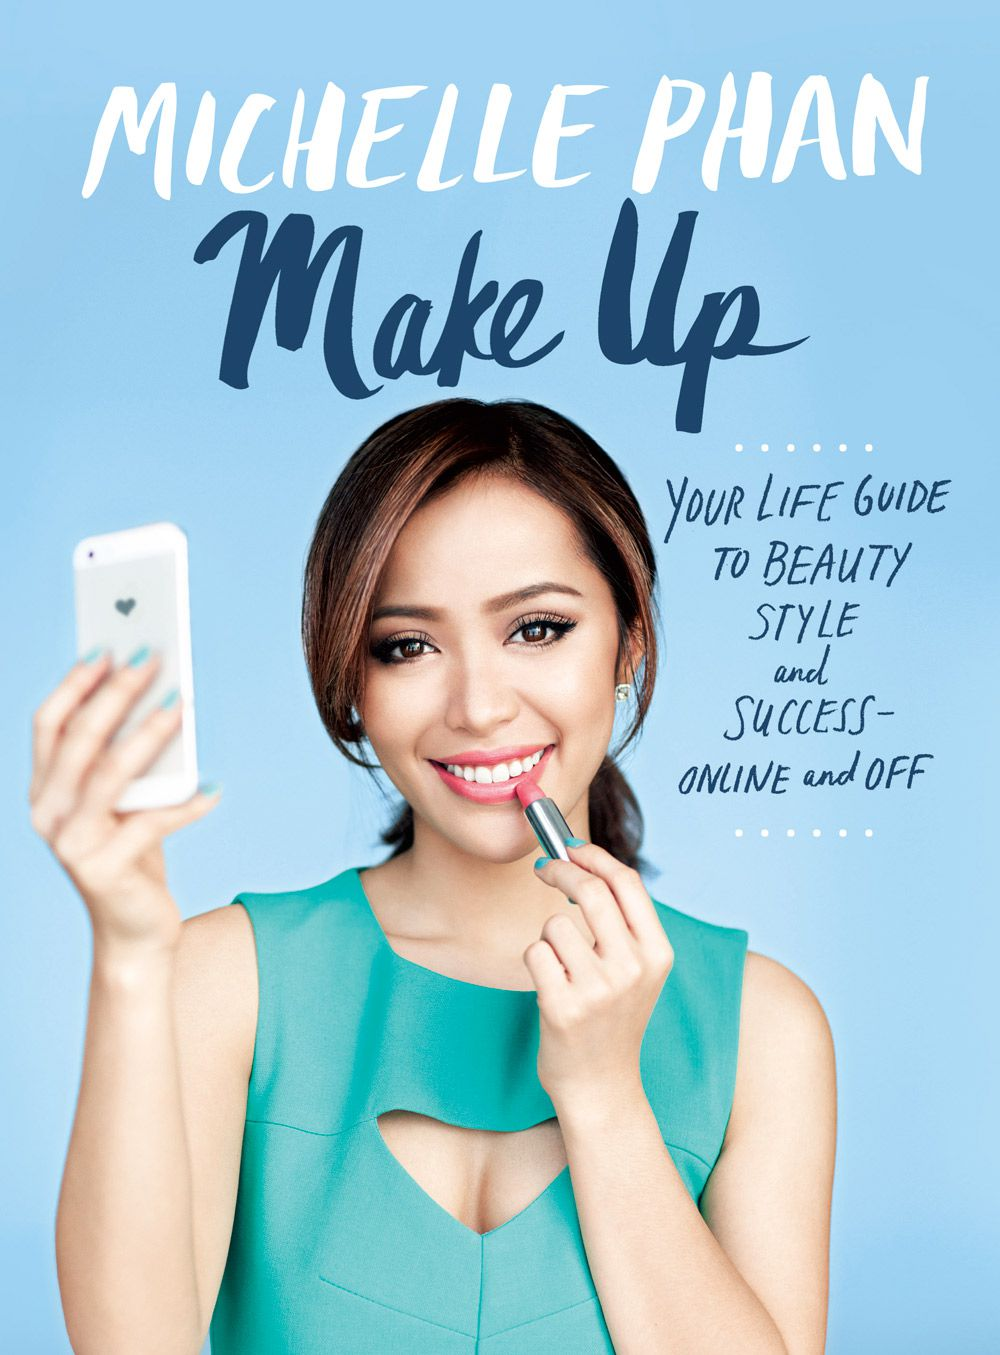 Michelle Phan, Ipsy founder and author